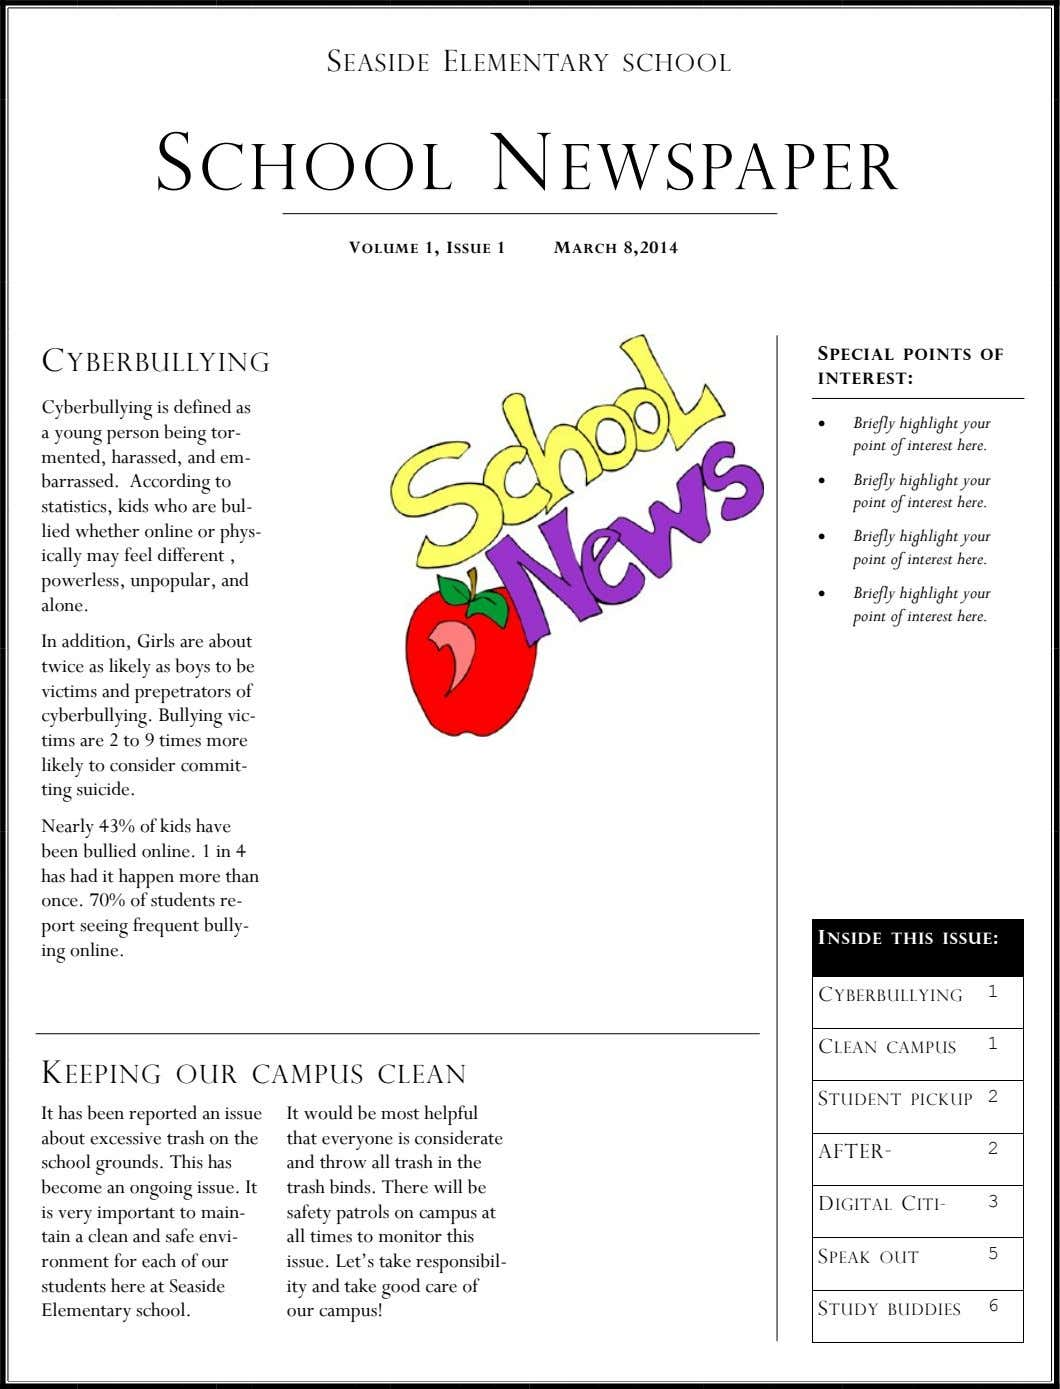 SEASIDE ELEMENTARY SCHOOL SCHOOL NEWSPAPER VOLUME 1, ISSUE 1 MARCH 8,2014 CYBERBULLYING SPECIAL POINTS OF INTEREST: